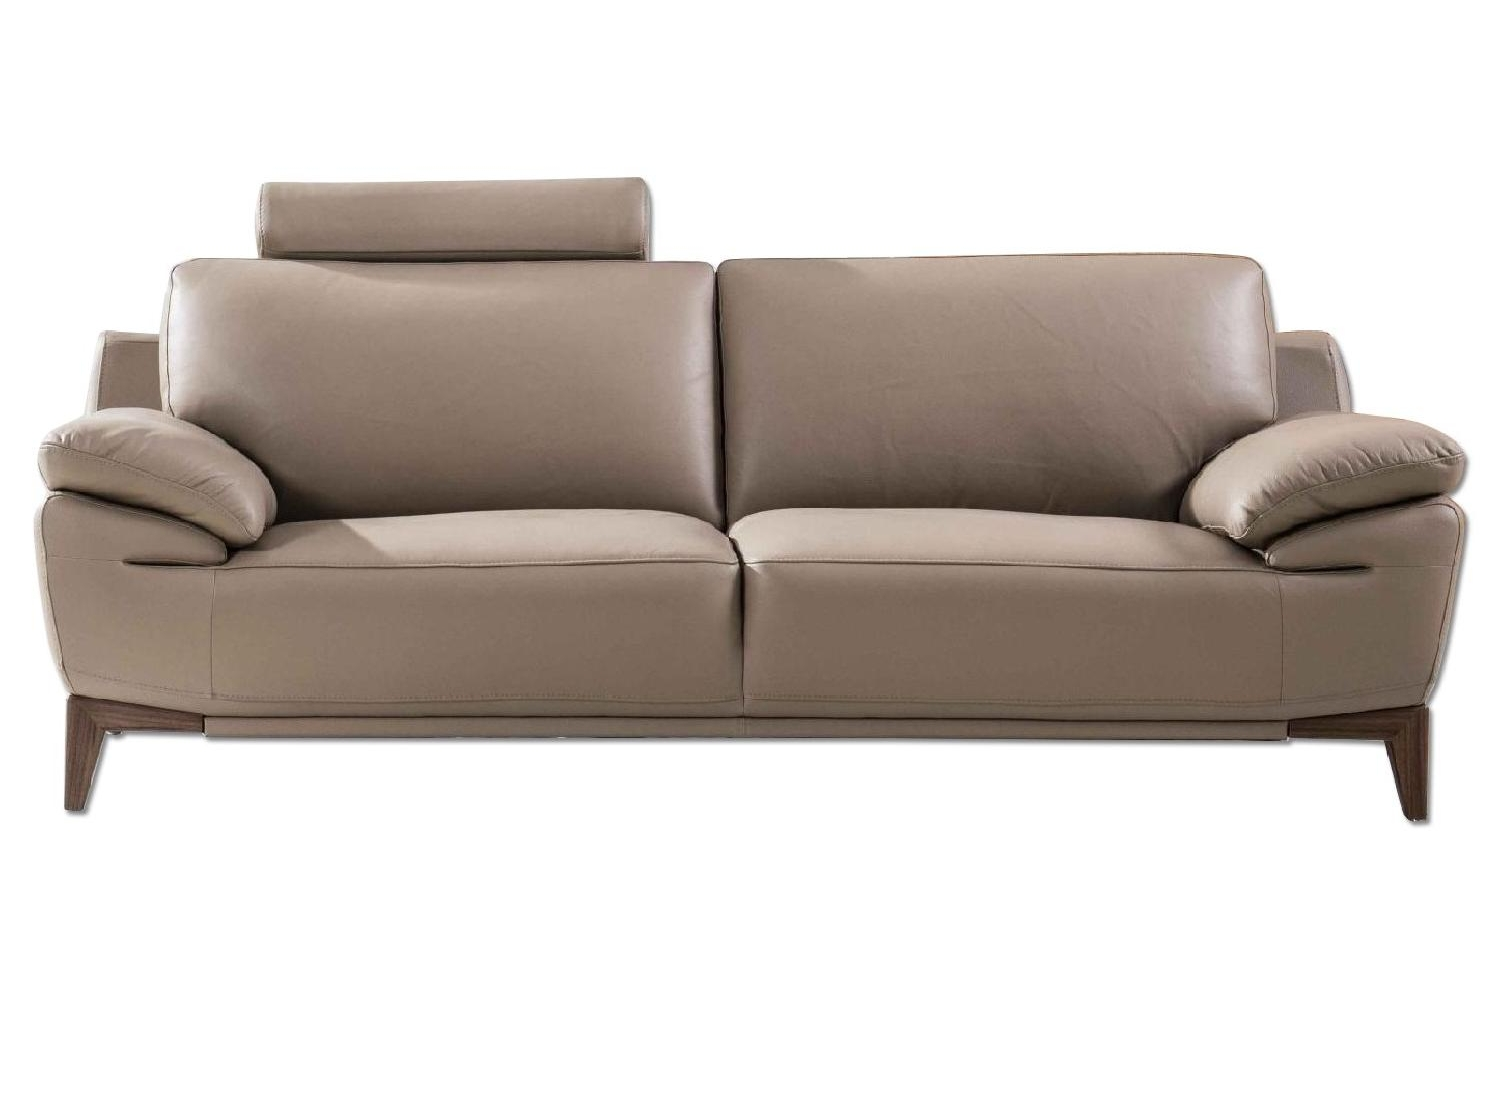 Leather Sofa Loveseat Living Room Set - Click Image to Close